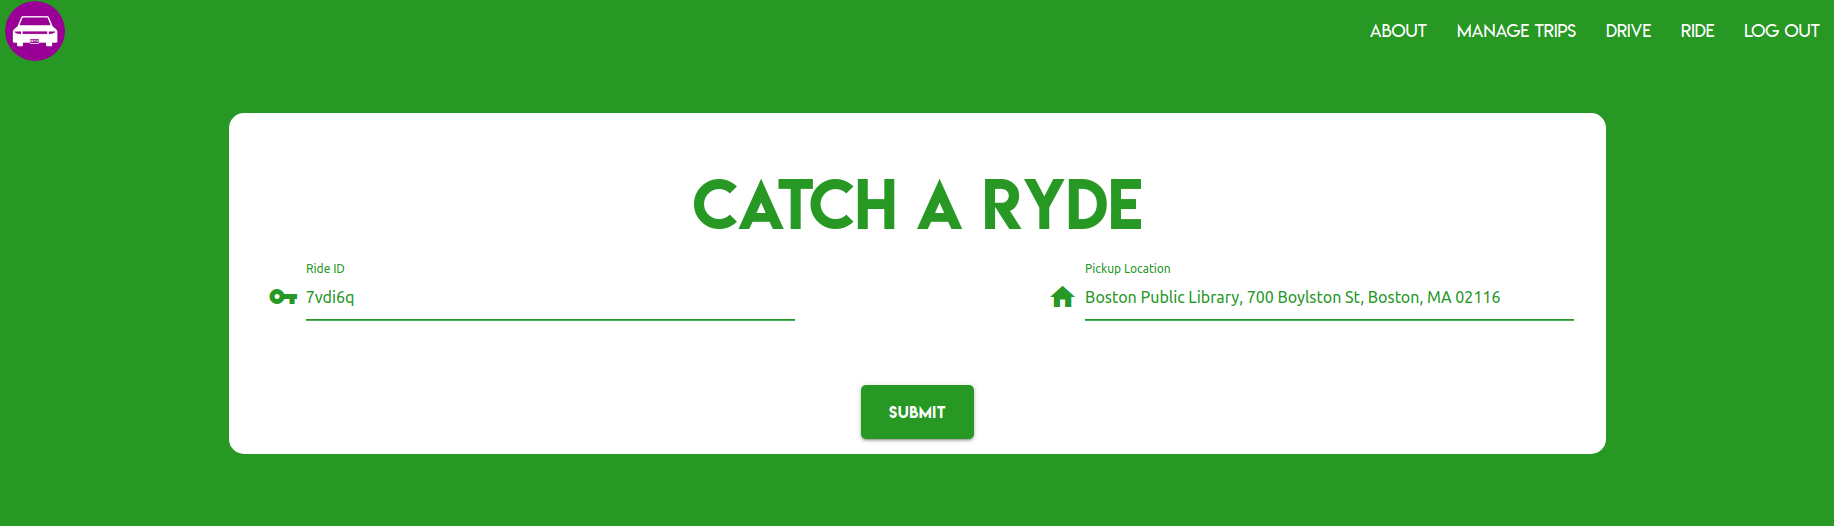 Catching a Ryde